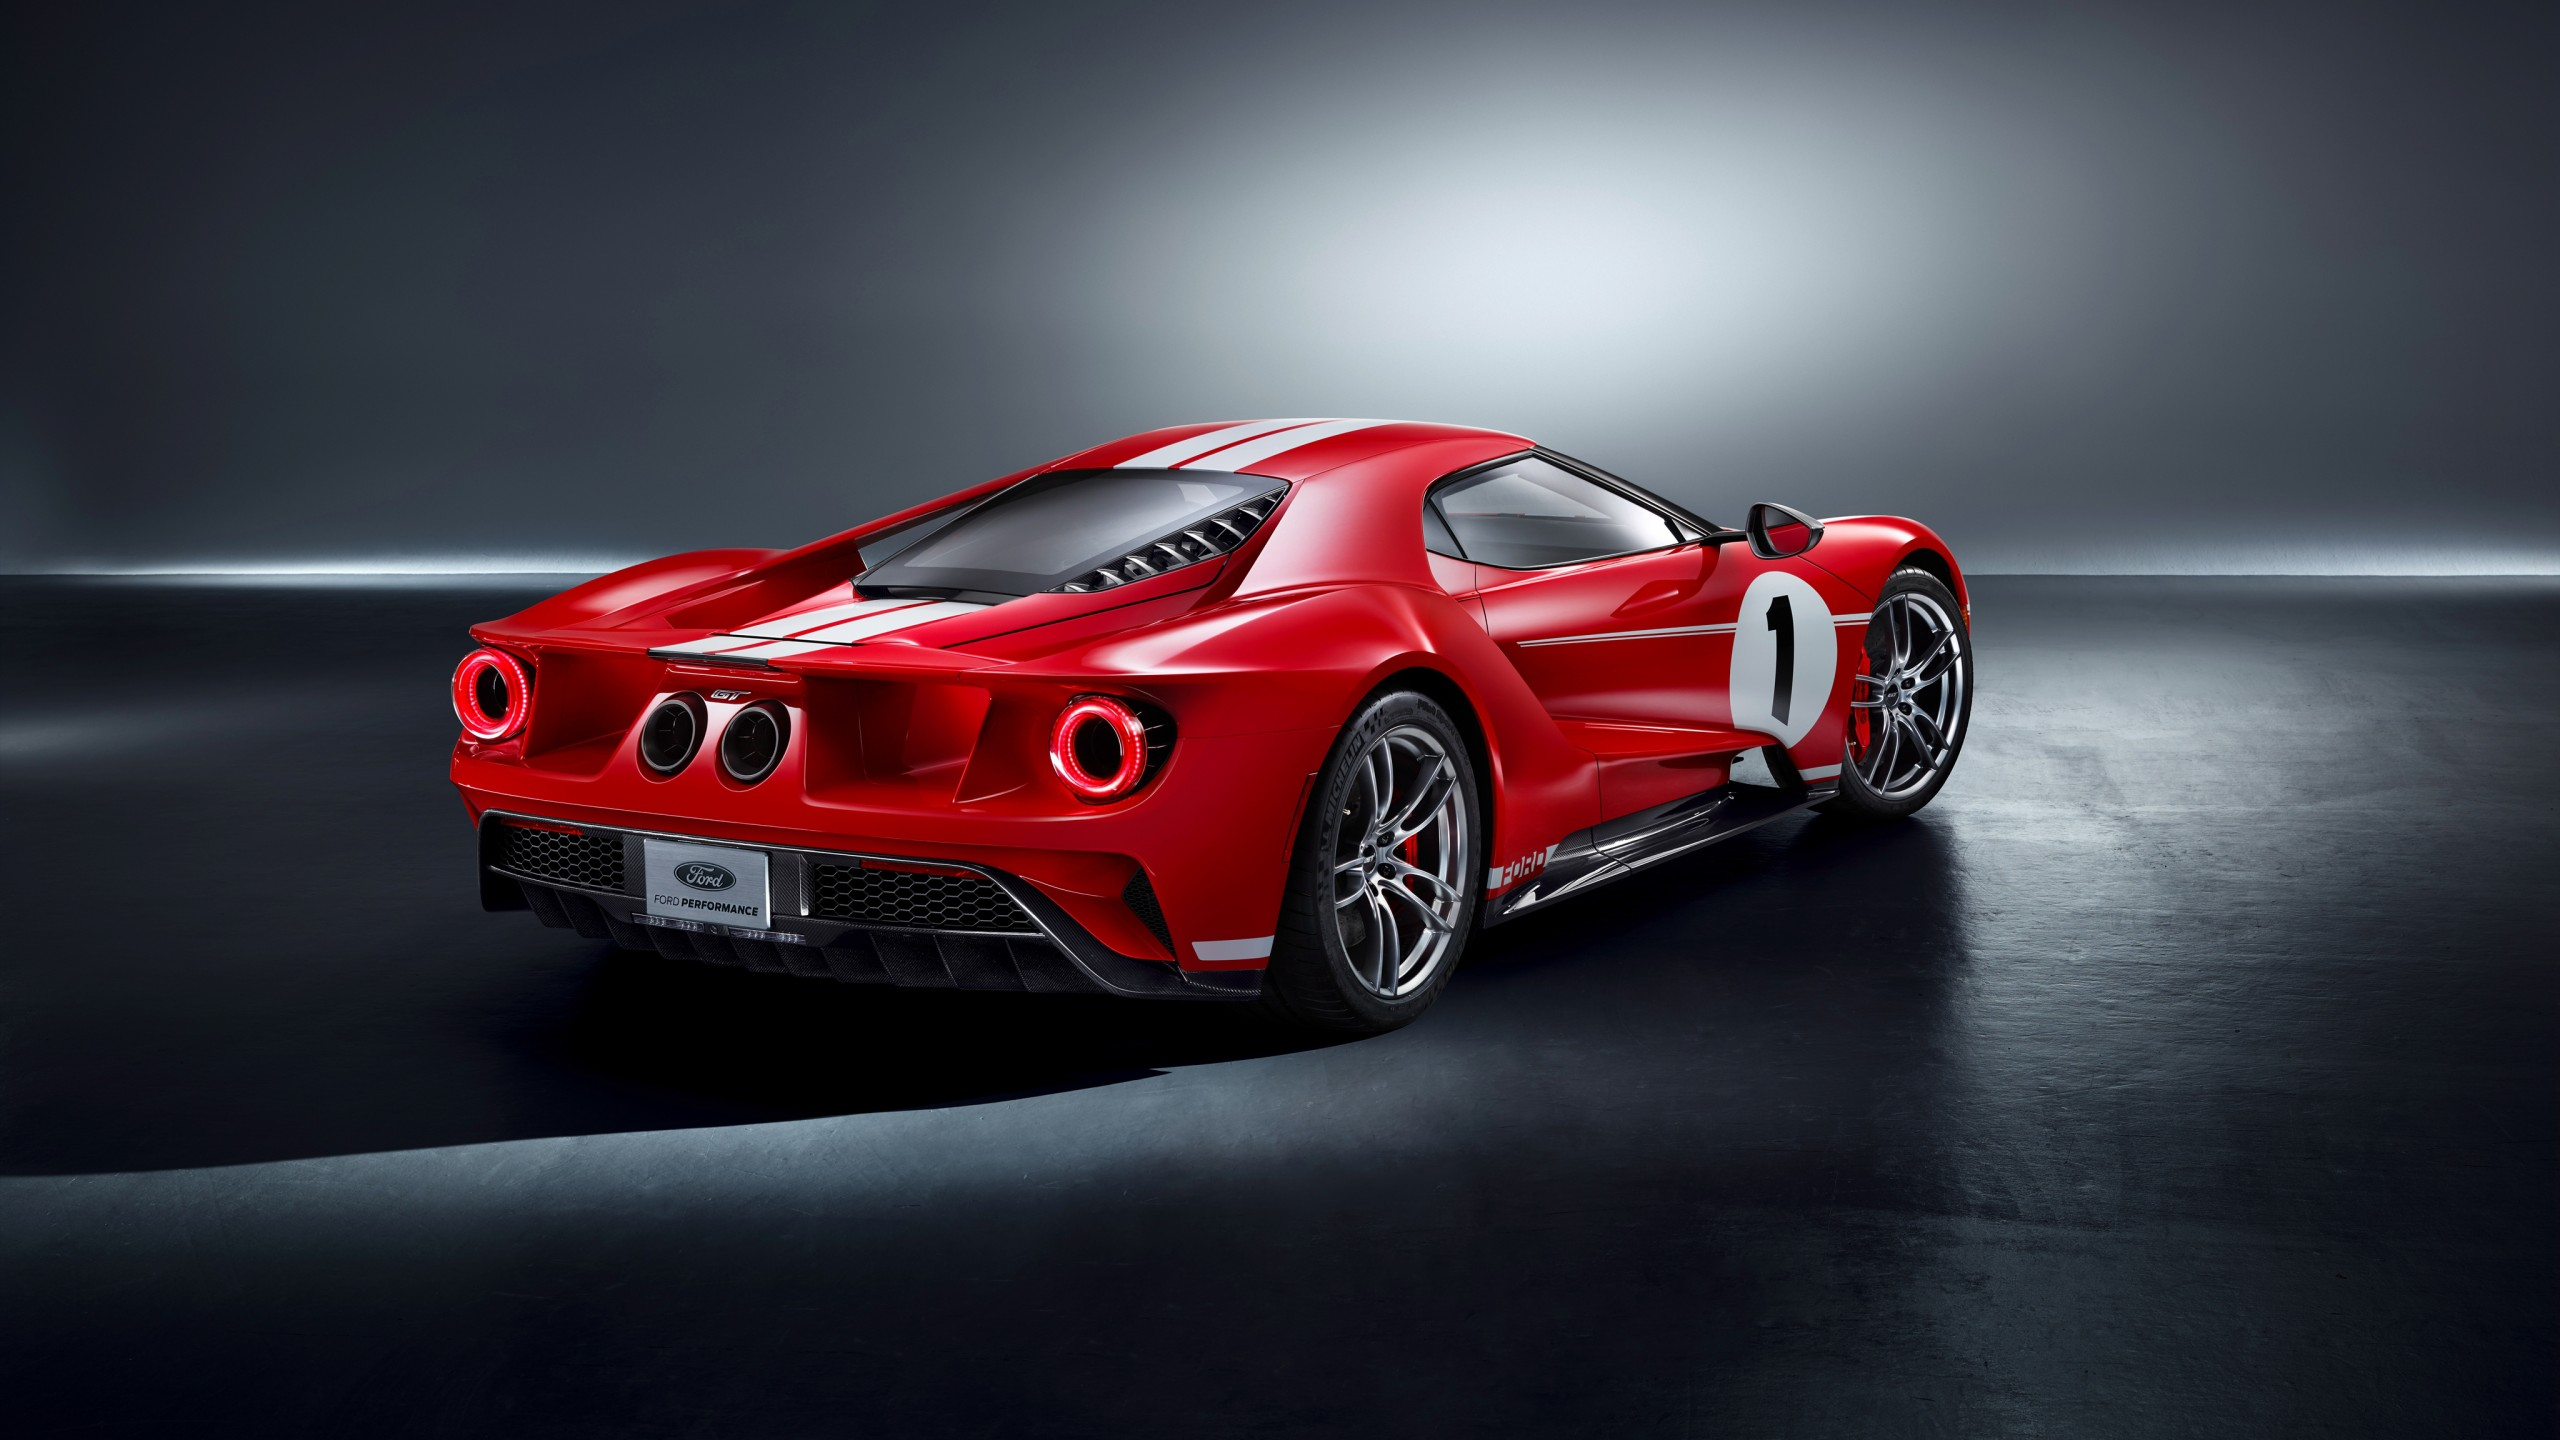 2017 Ford Gt Hd Wallpaper 2018 Ford Gt 67 Heritage Edition 4k 2 Wallpaper Hd Car